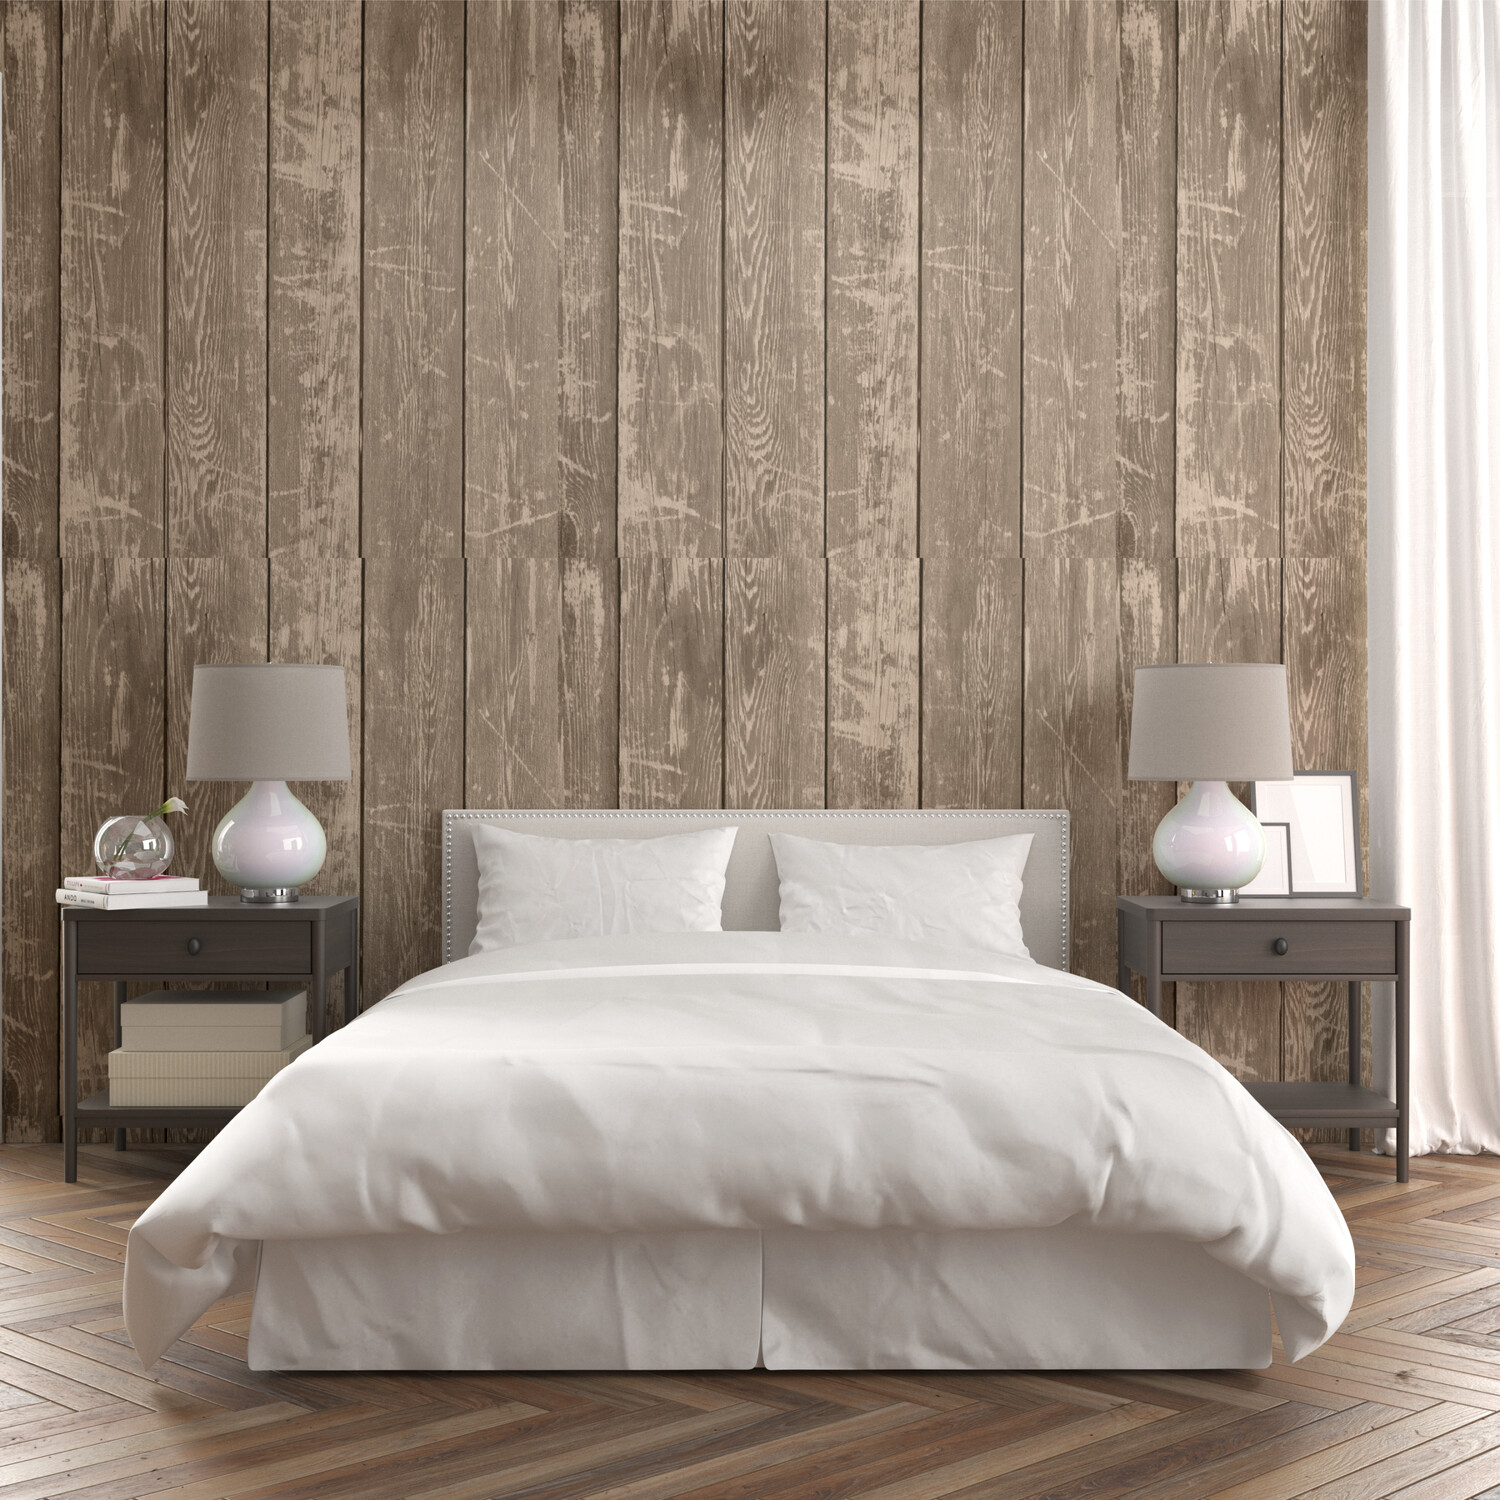 NATURAL WOOD PLANK | Vinyl Wall Wrap for Any Room | Removable Vinyl Wallpaper